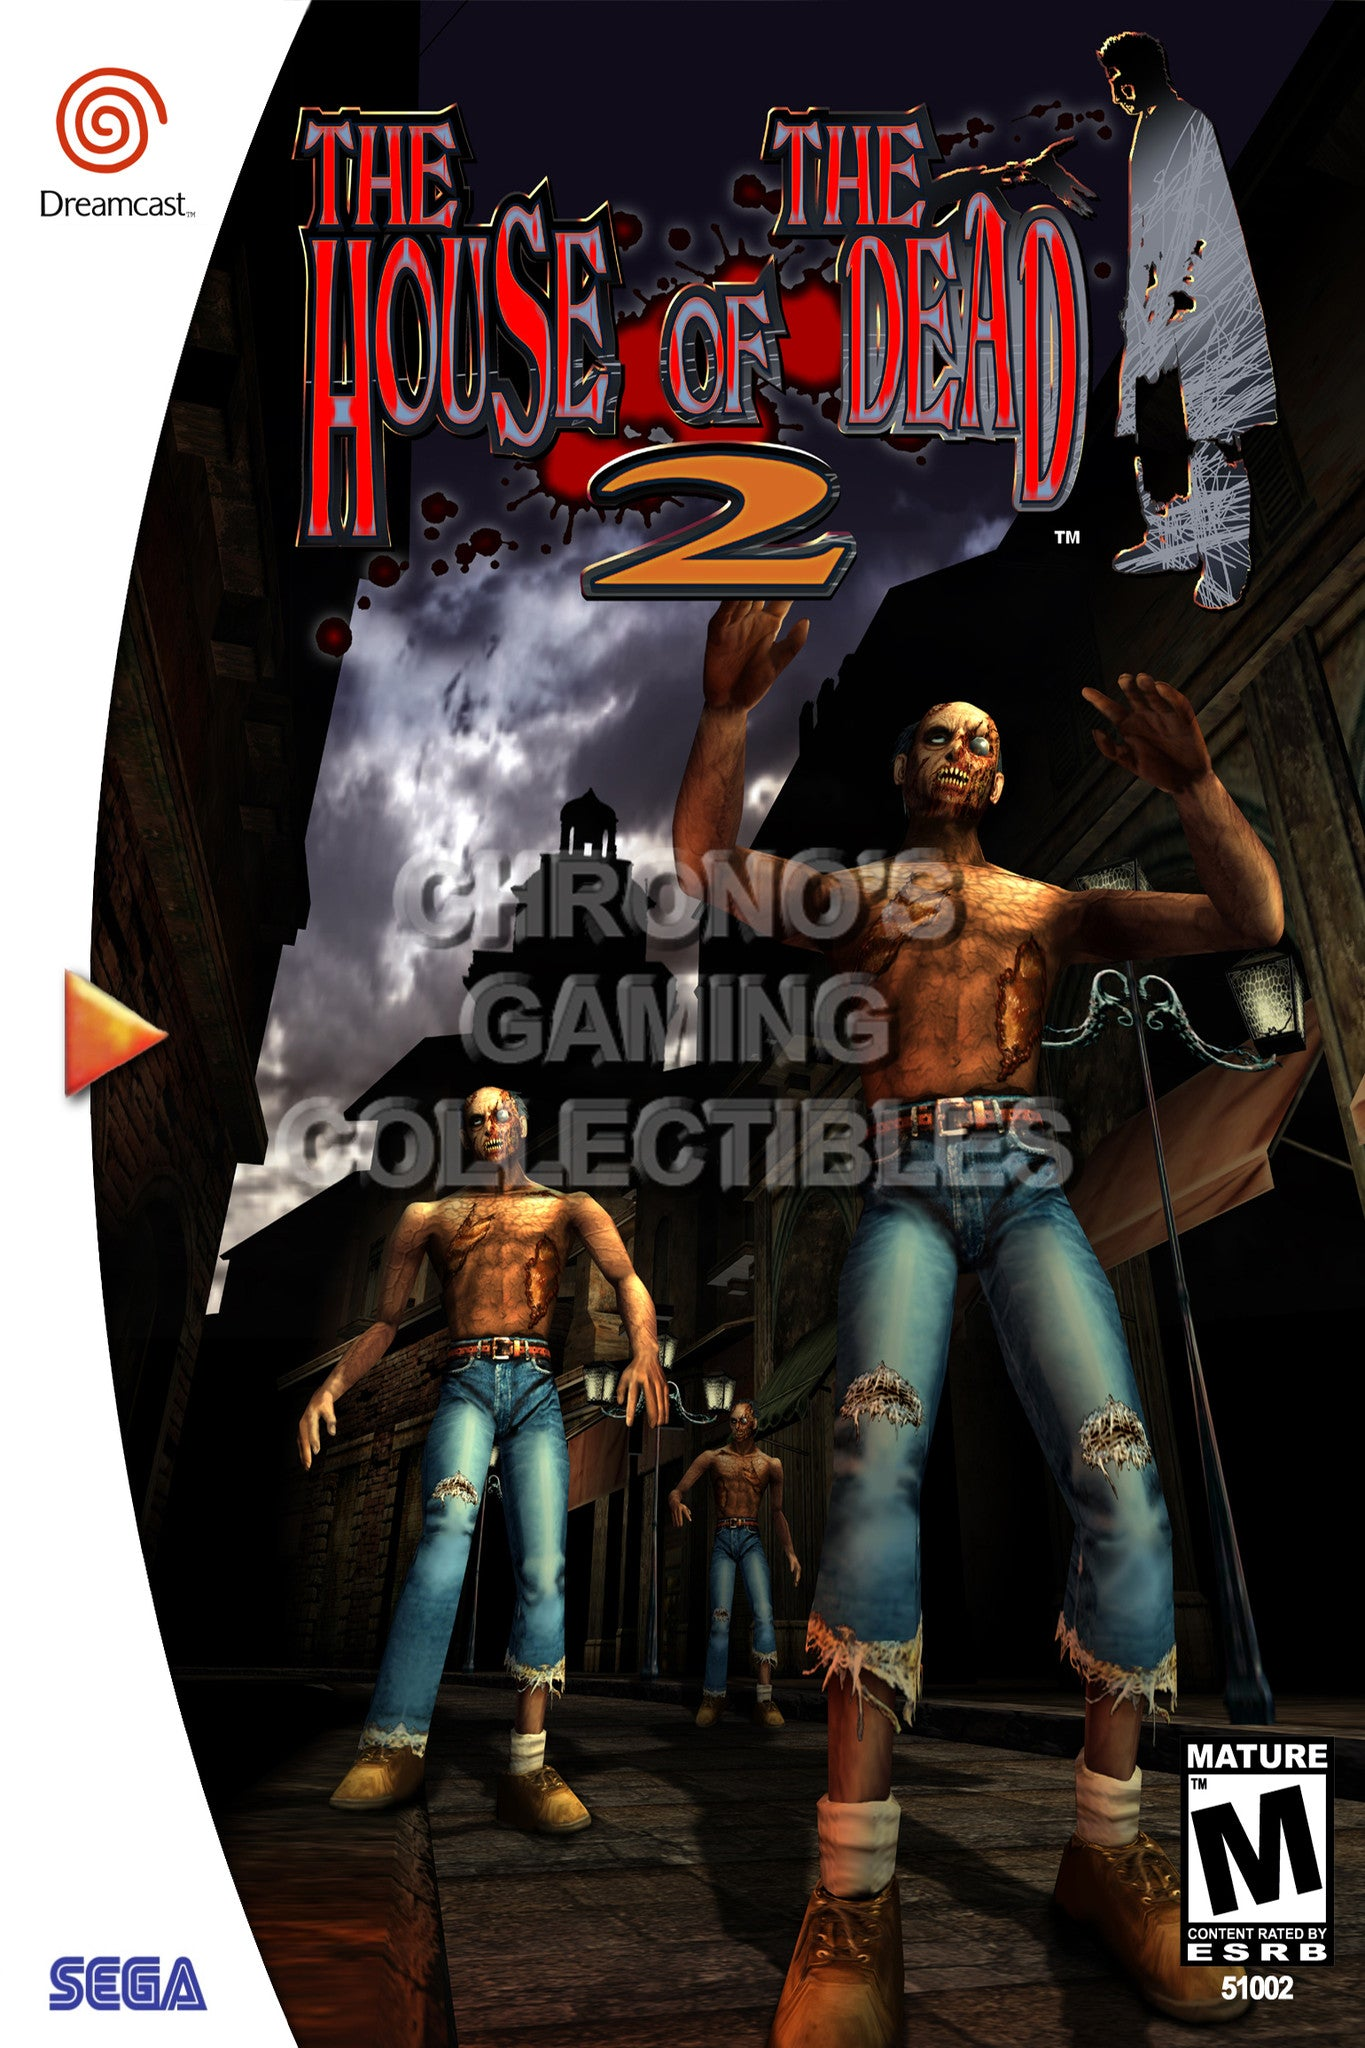 Sega Dreamcast Video Games Poster Cgcposters